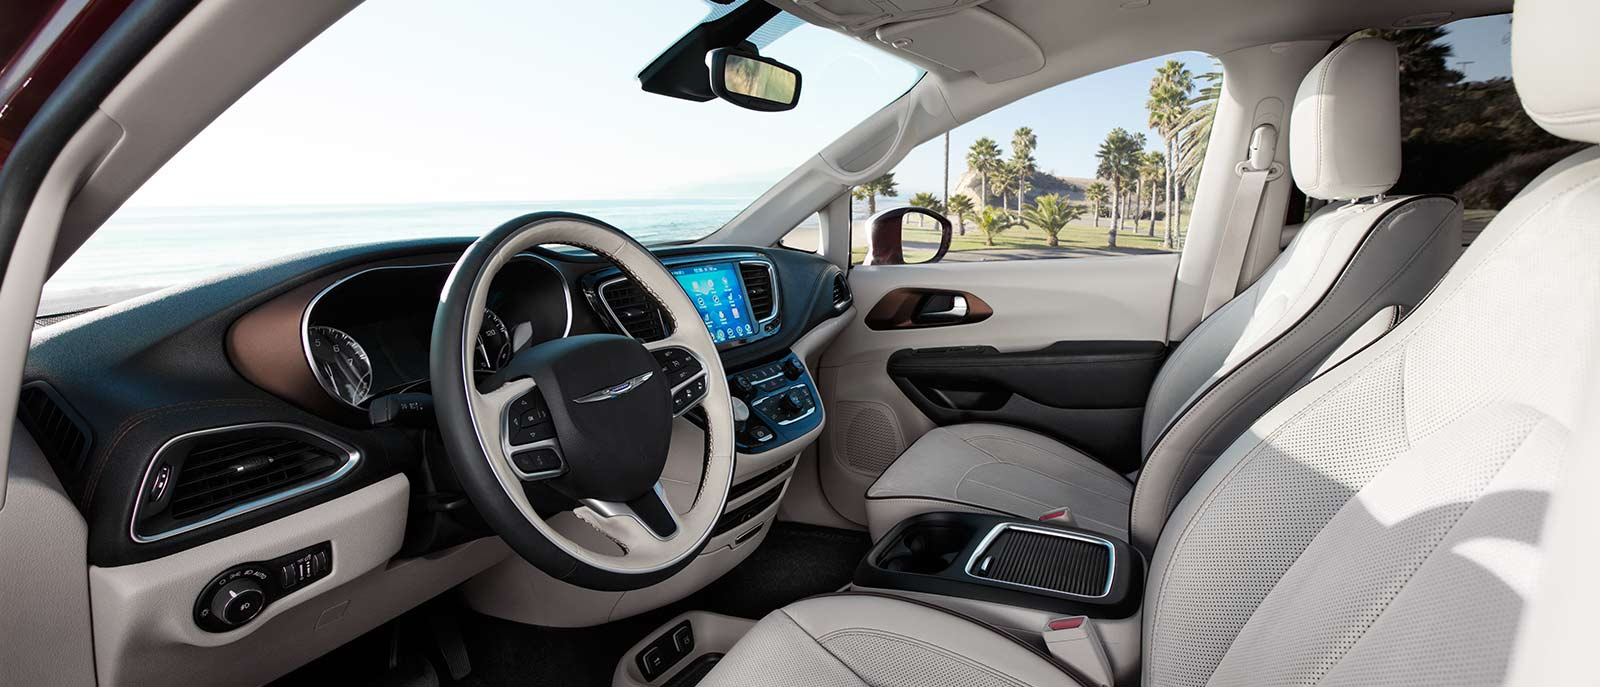 2017 Chrysler Pacifica seats